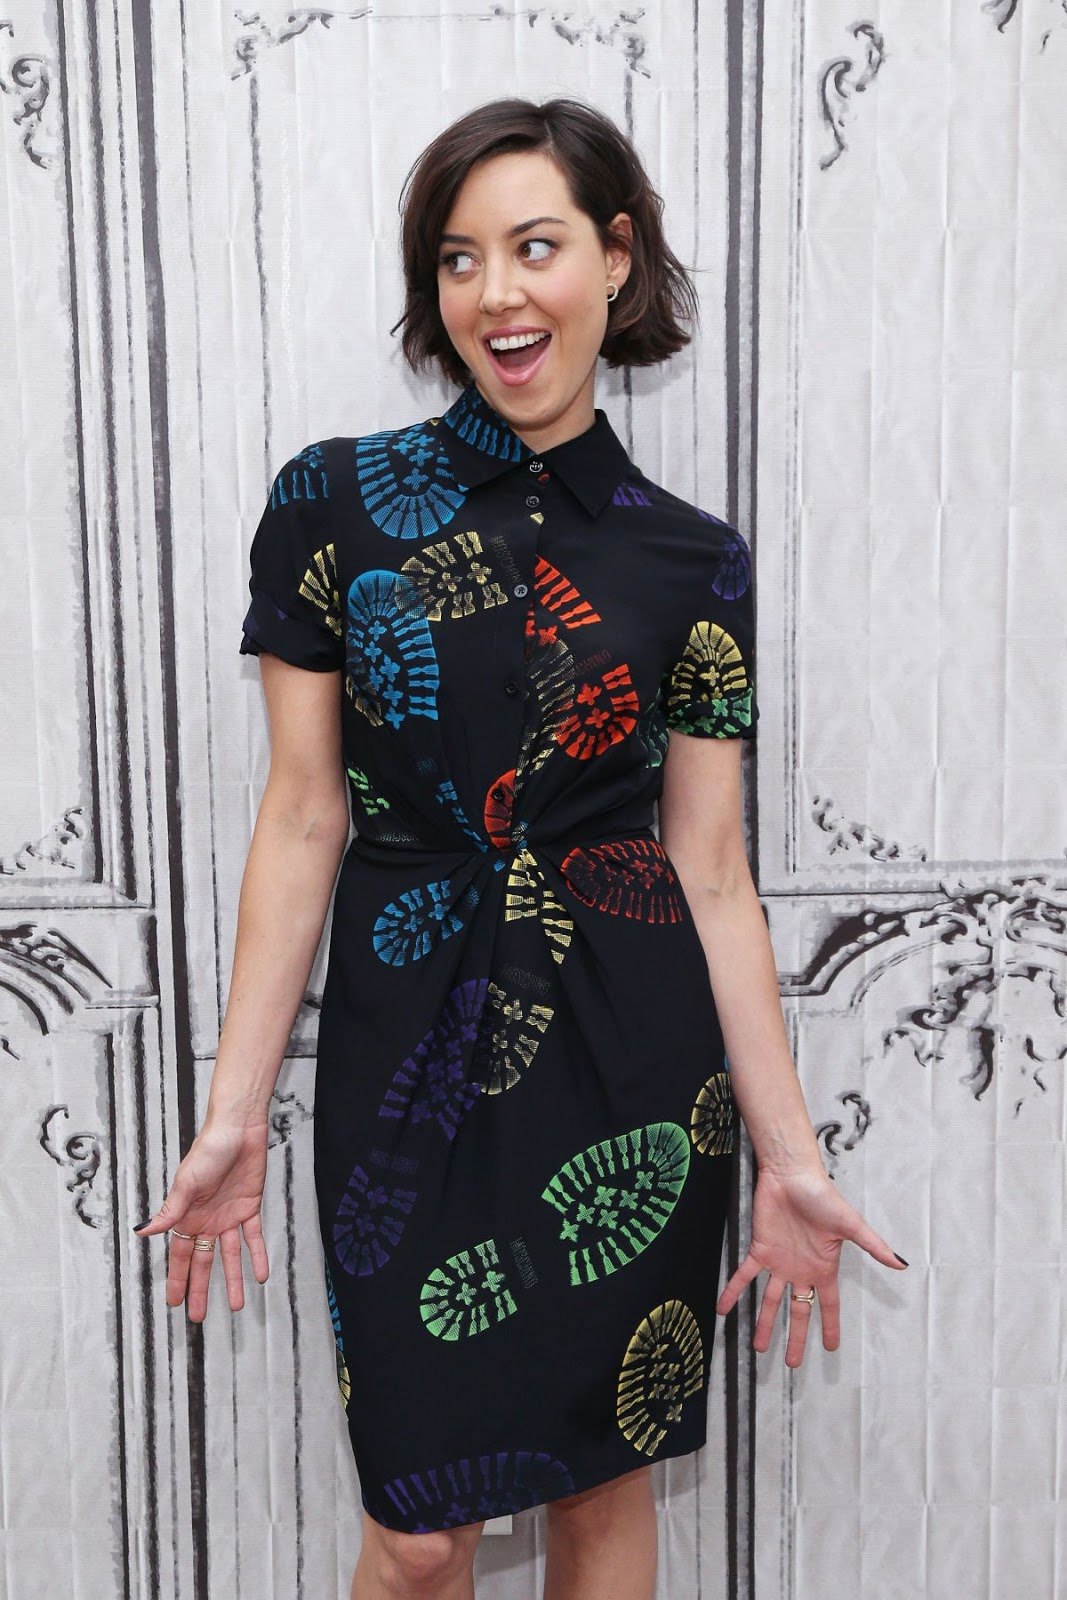 HD Photos of Aubrey Plaza At AOL Build Speakers Series In New York